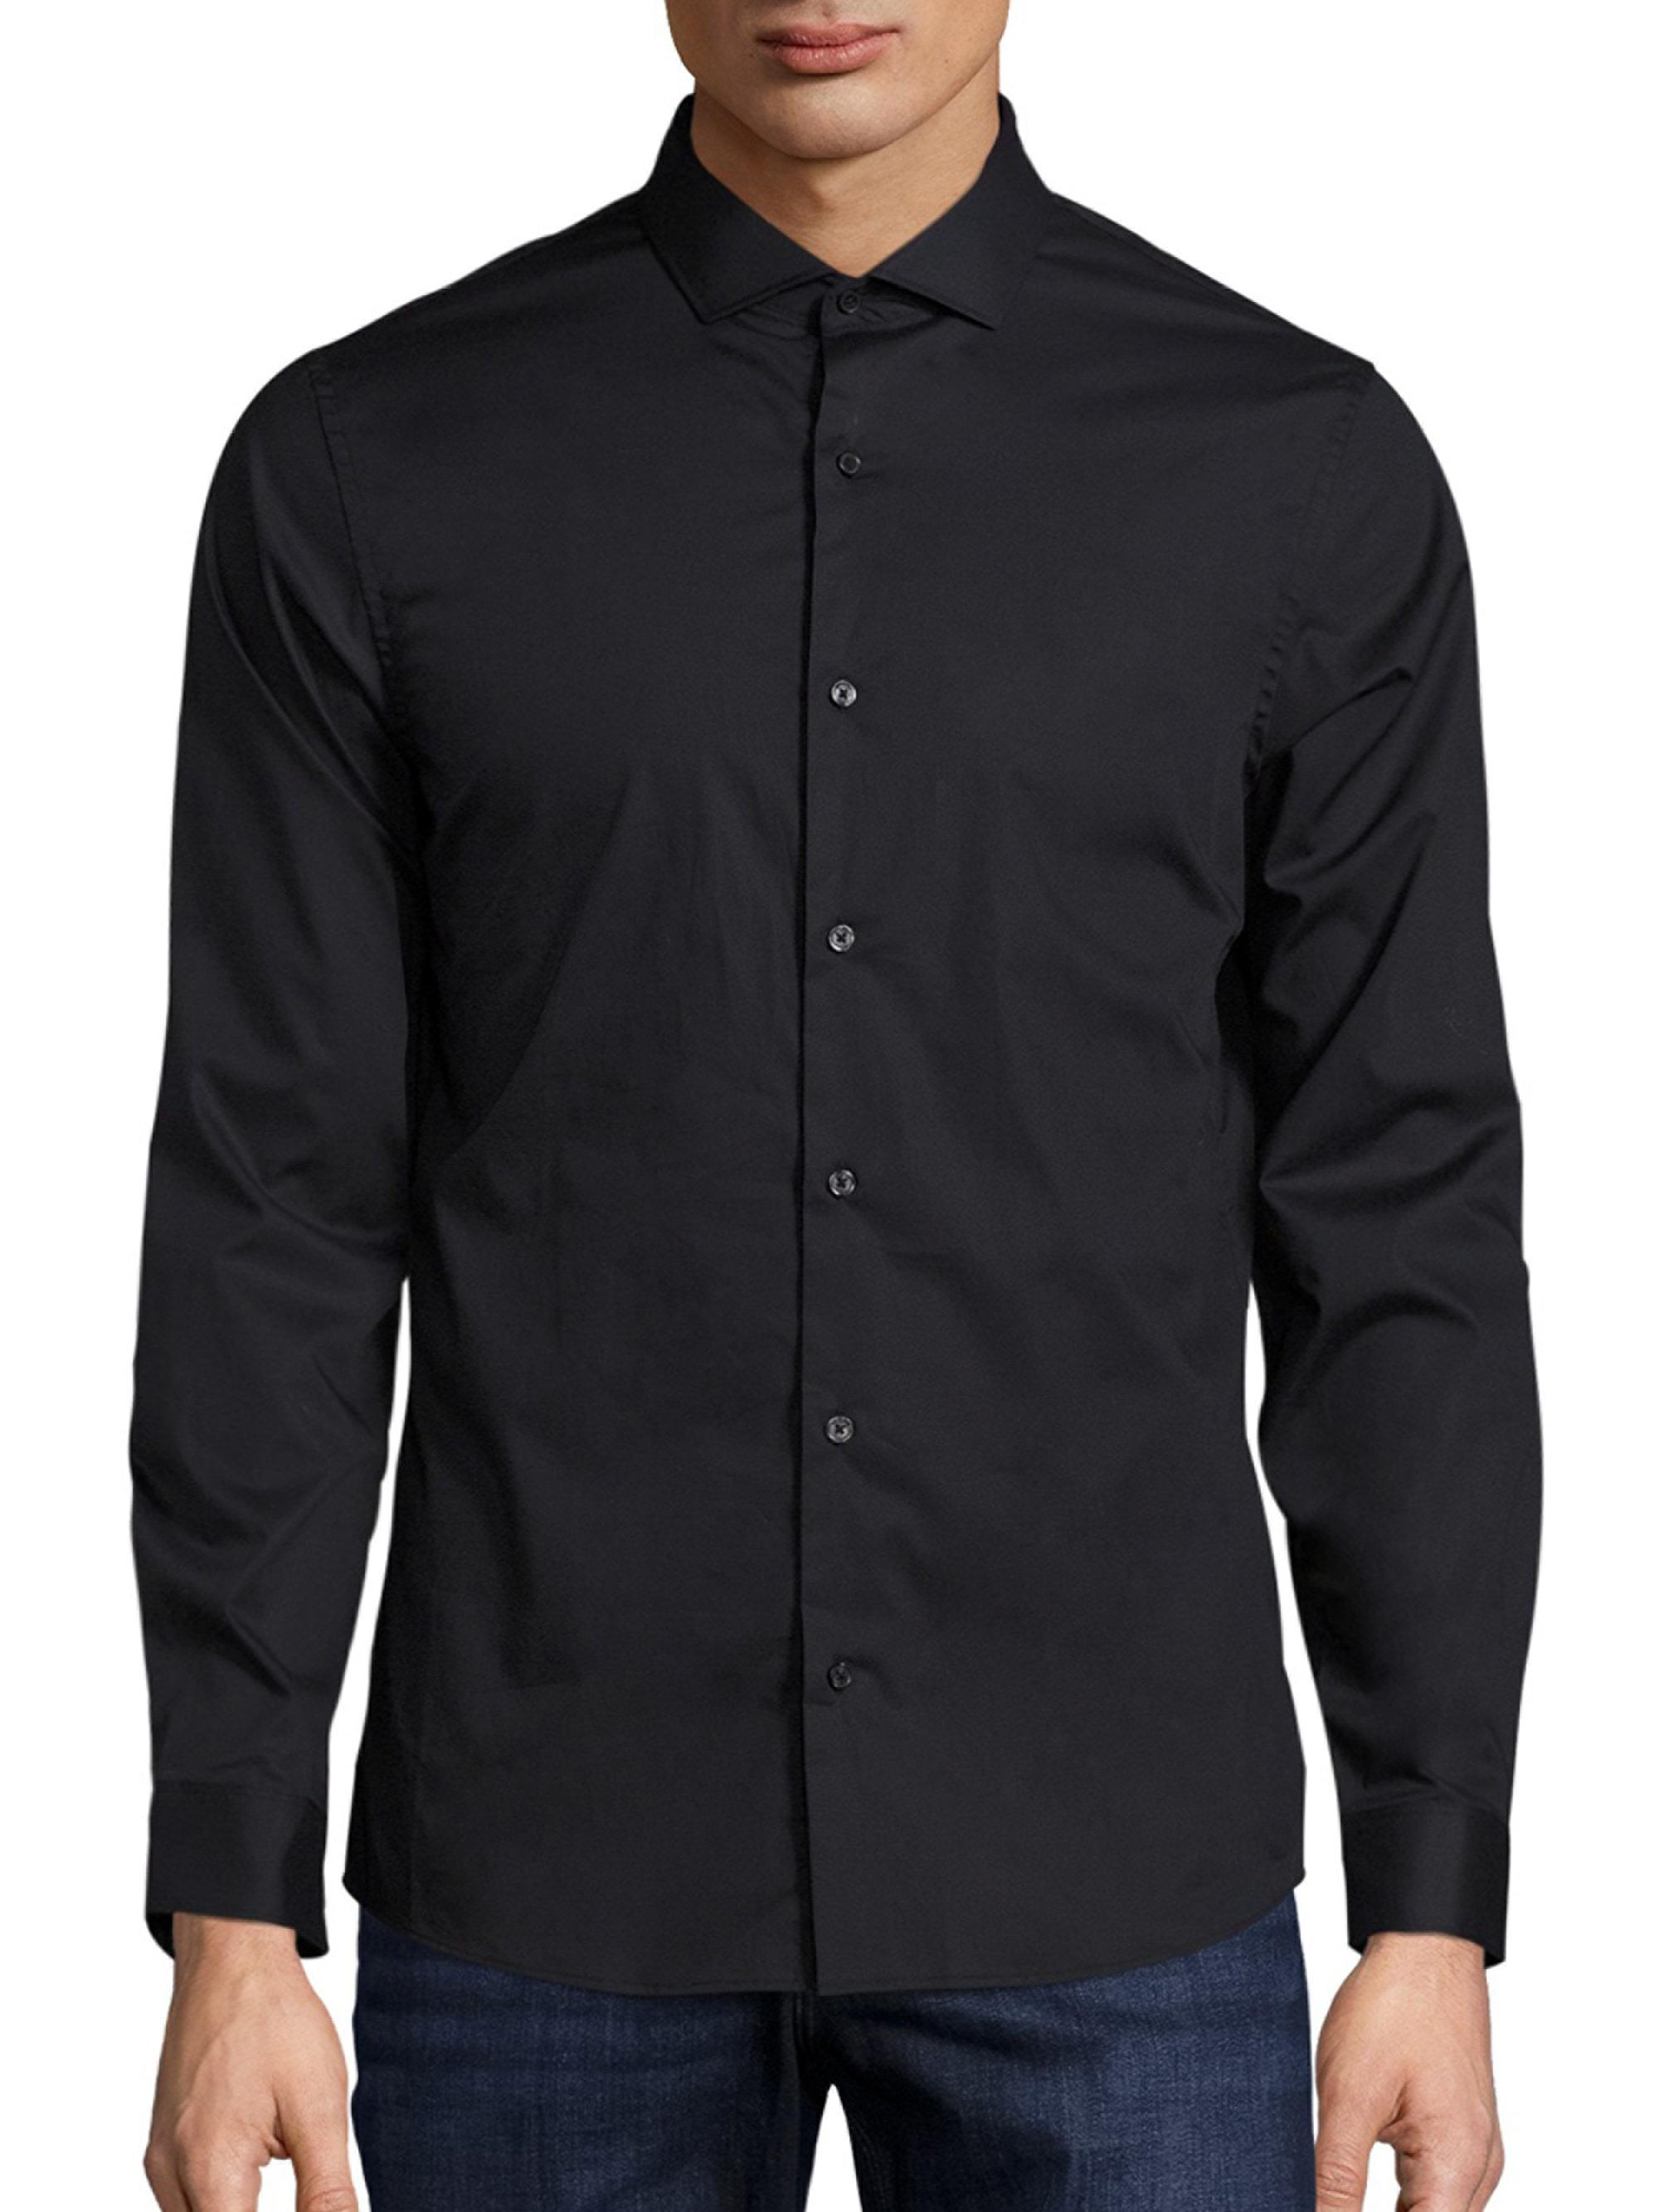 Michael kors Slim-fit Stretch Button-down Shirt in Black for Men ...